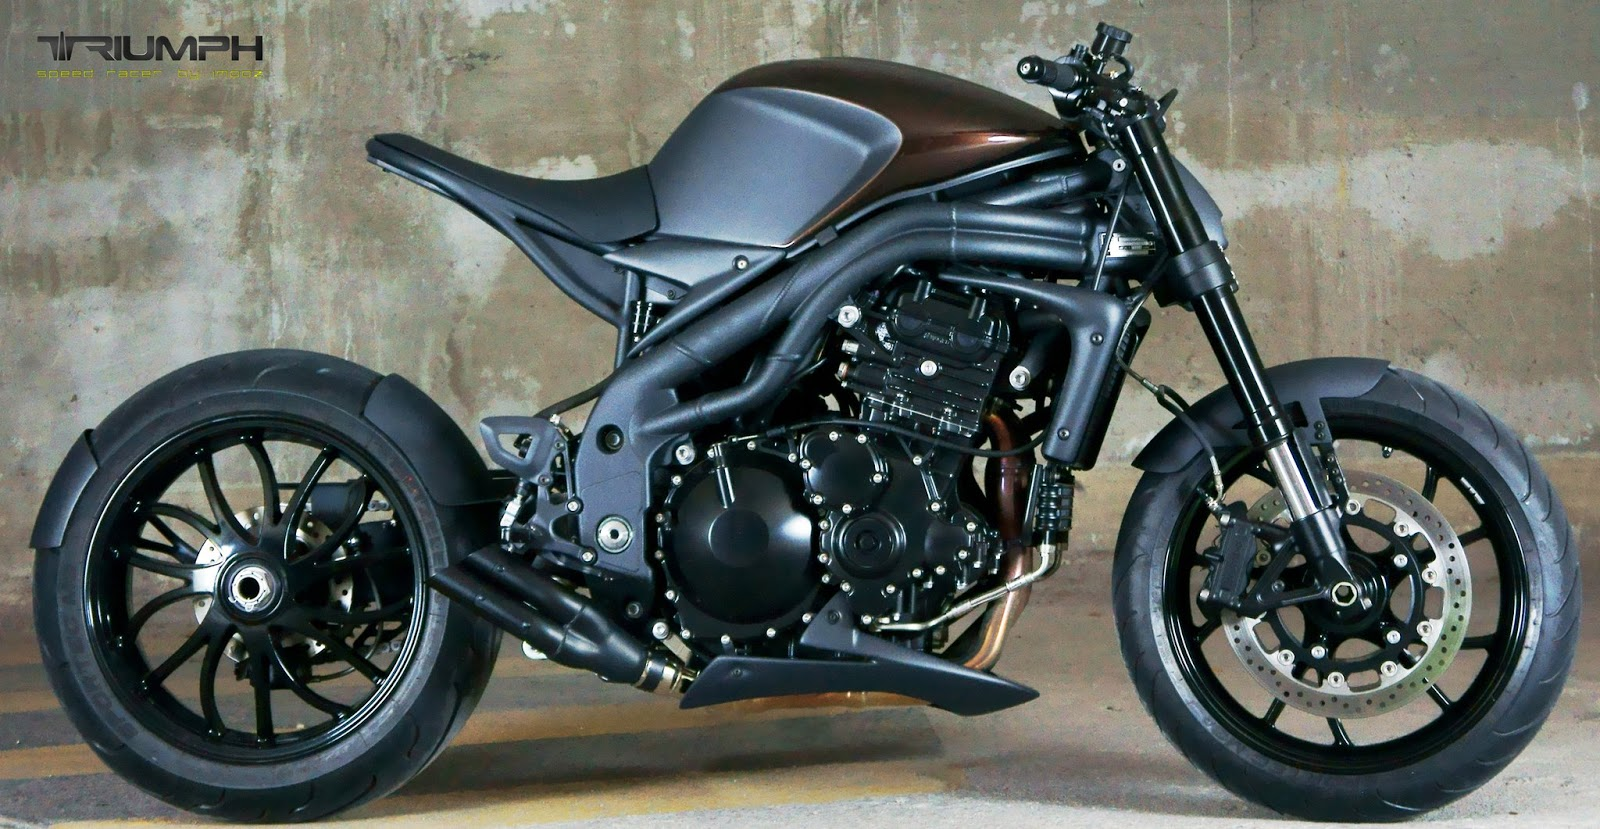 moto mucci daily inspiration triumph 1050 speed triple by impoz design. Black Bedroom Furniture Sets. Home Design Ideas